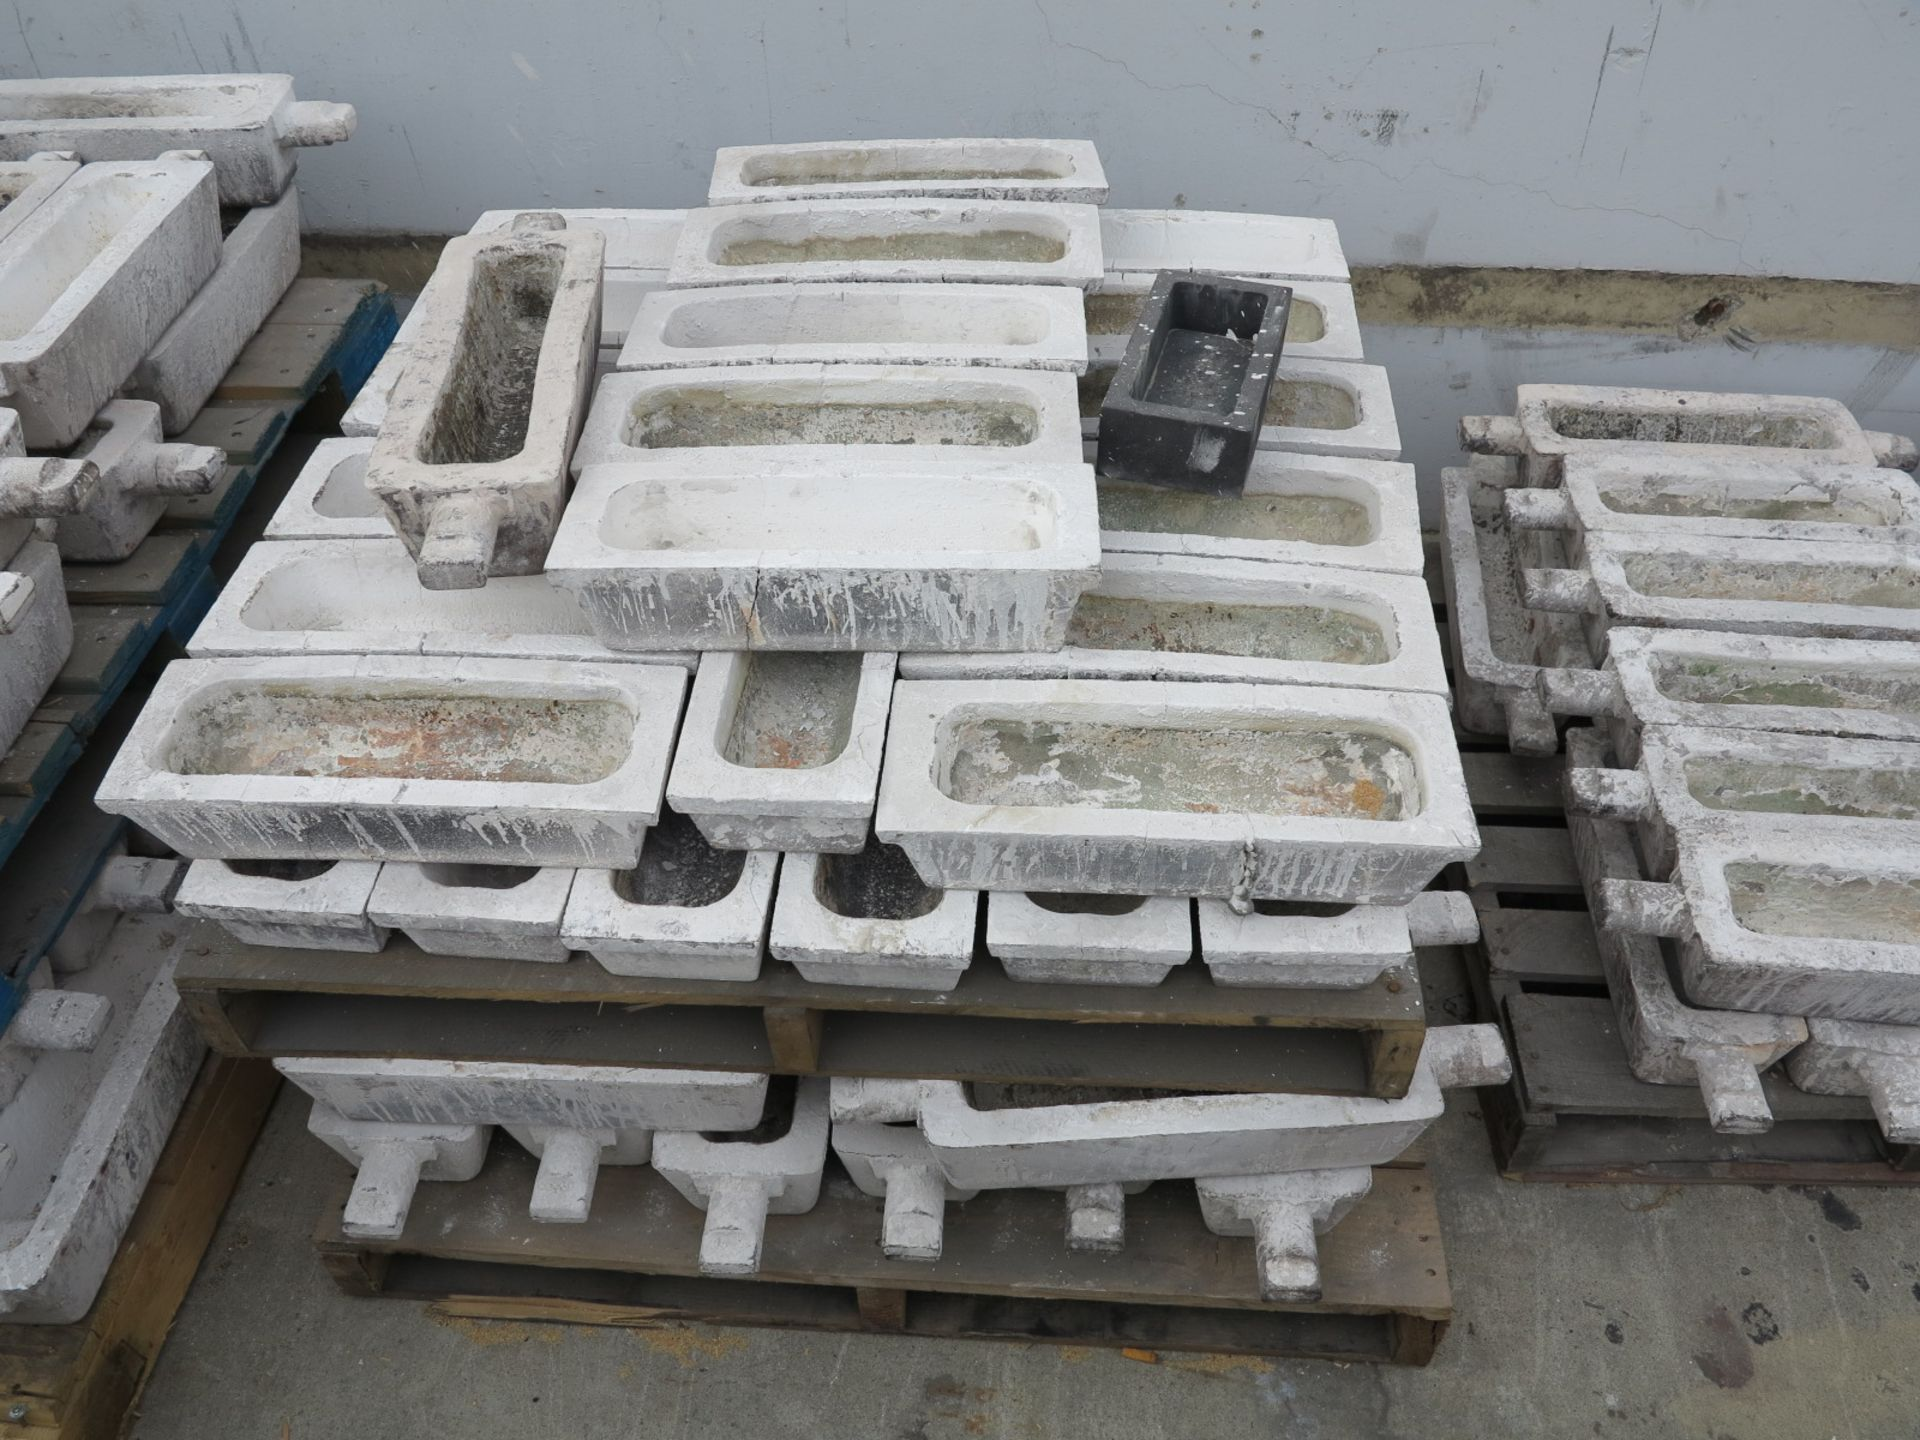 Lot 1204 - LOT - (4) PALLETS OF INGOT MOLDS AND (1) MOLD RACK